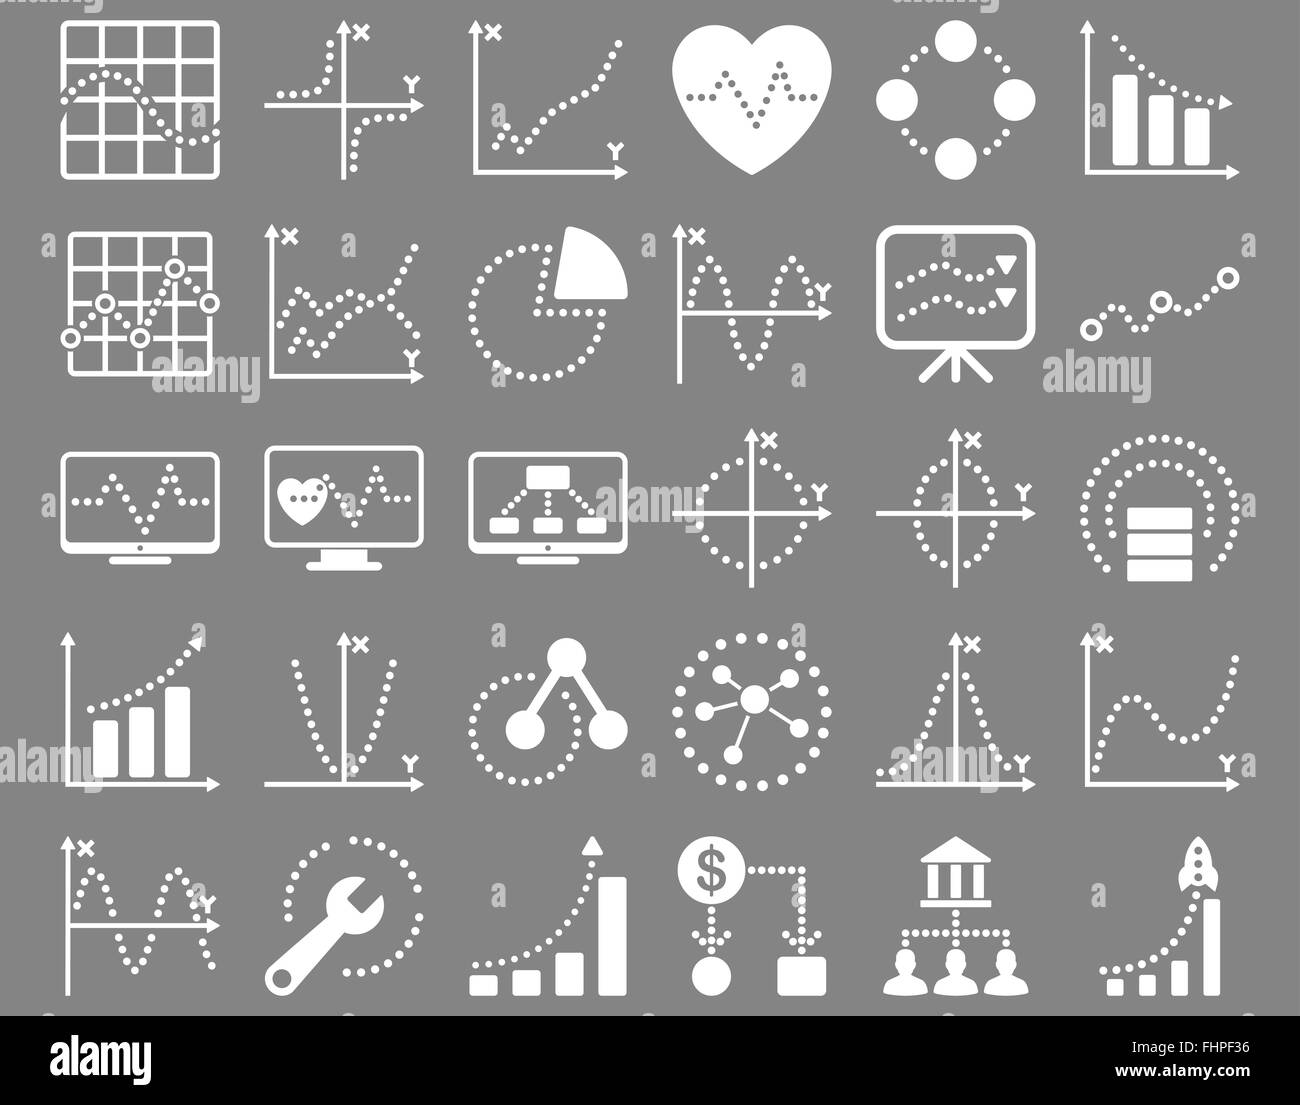 Dotted charts icons stock photo 96995786 alamy dotted charts icons geenschuldenfo Gallery